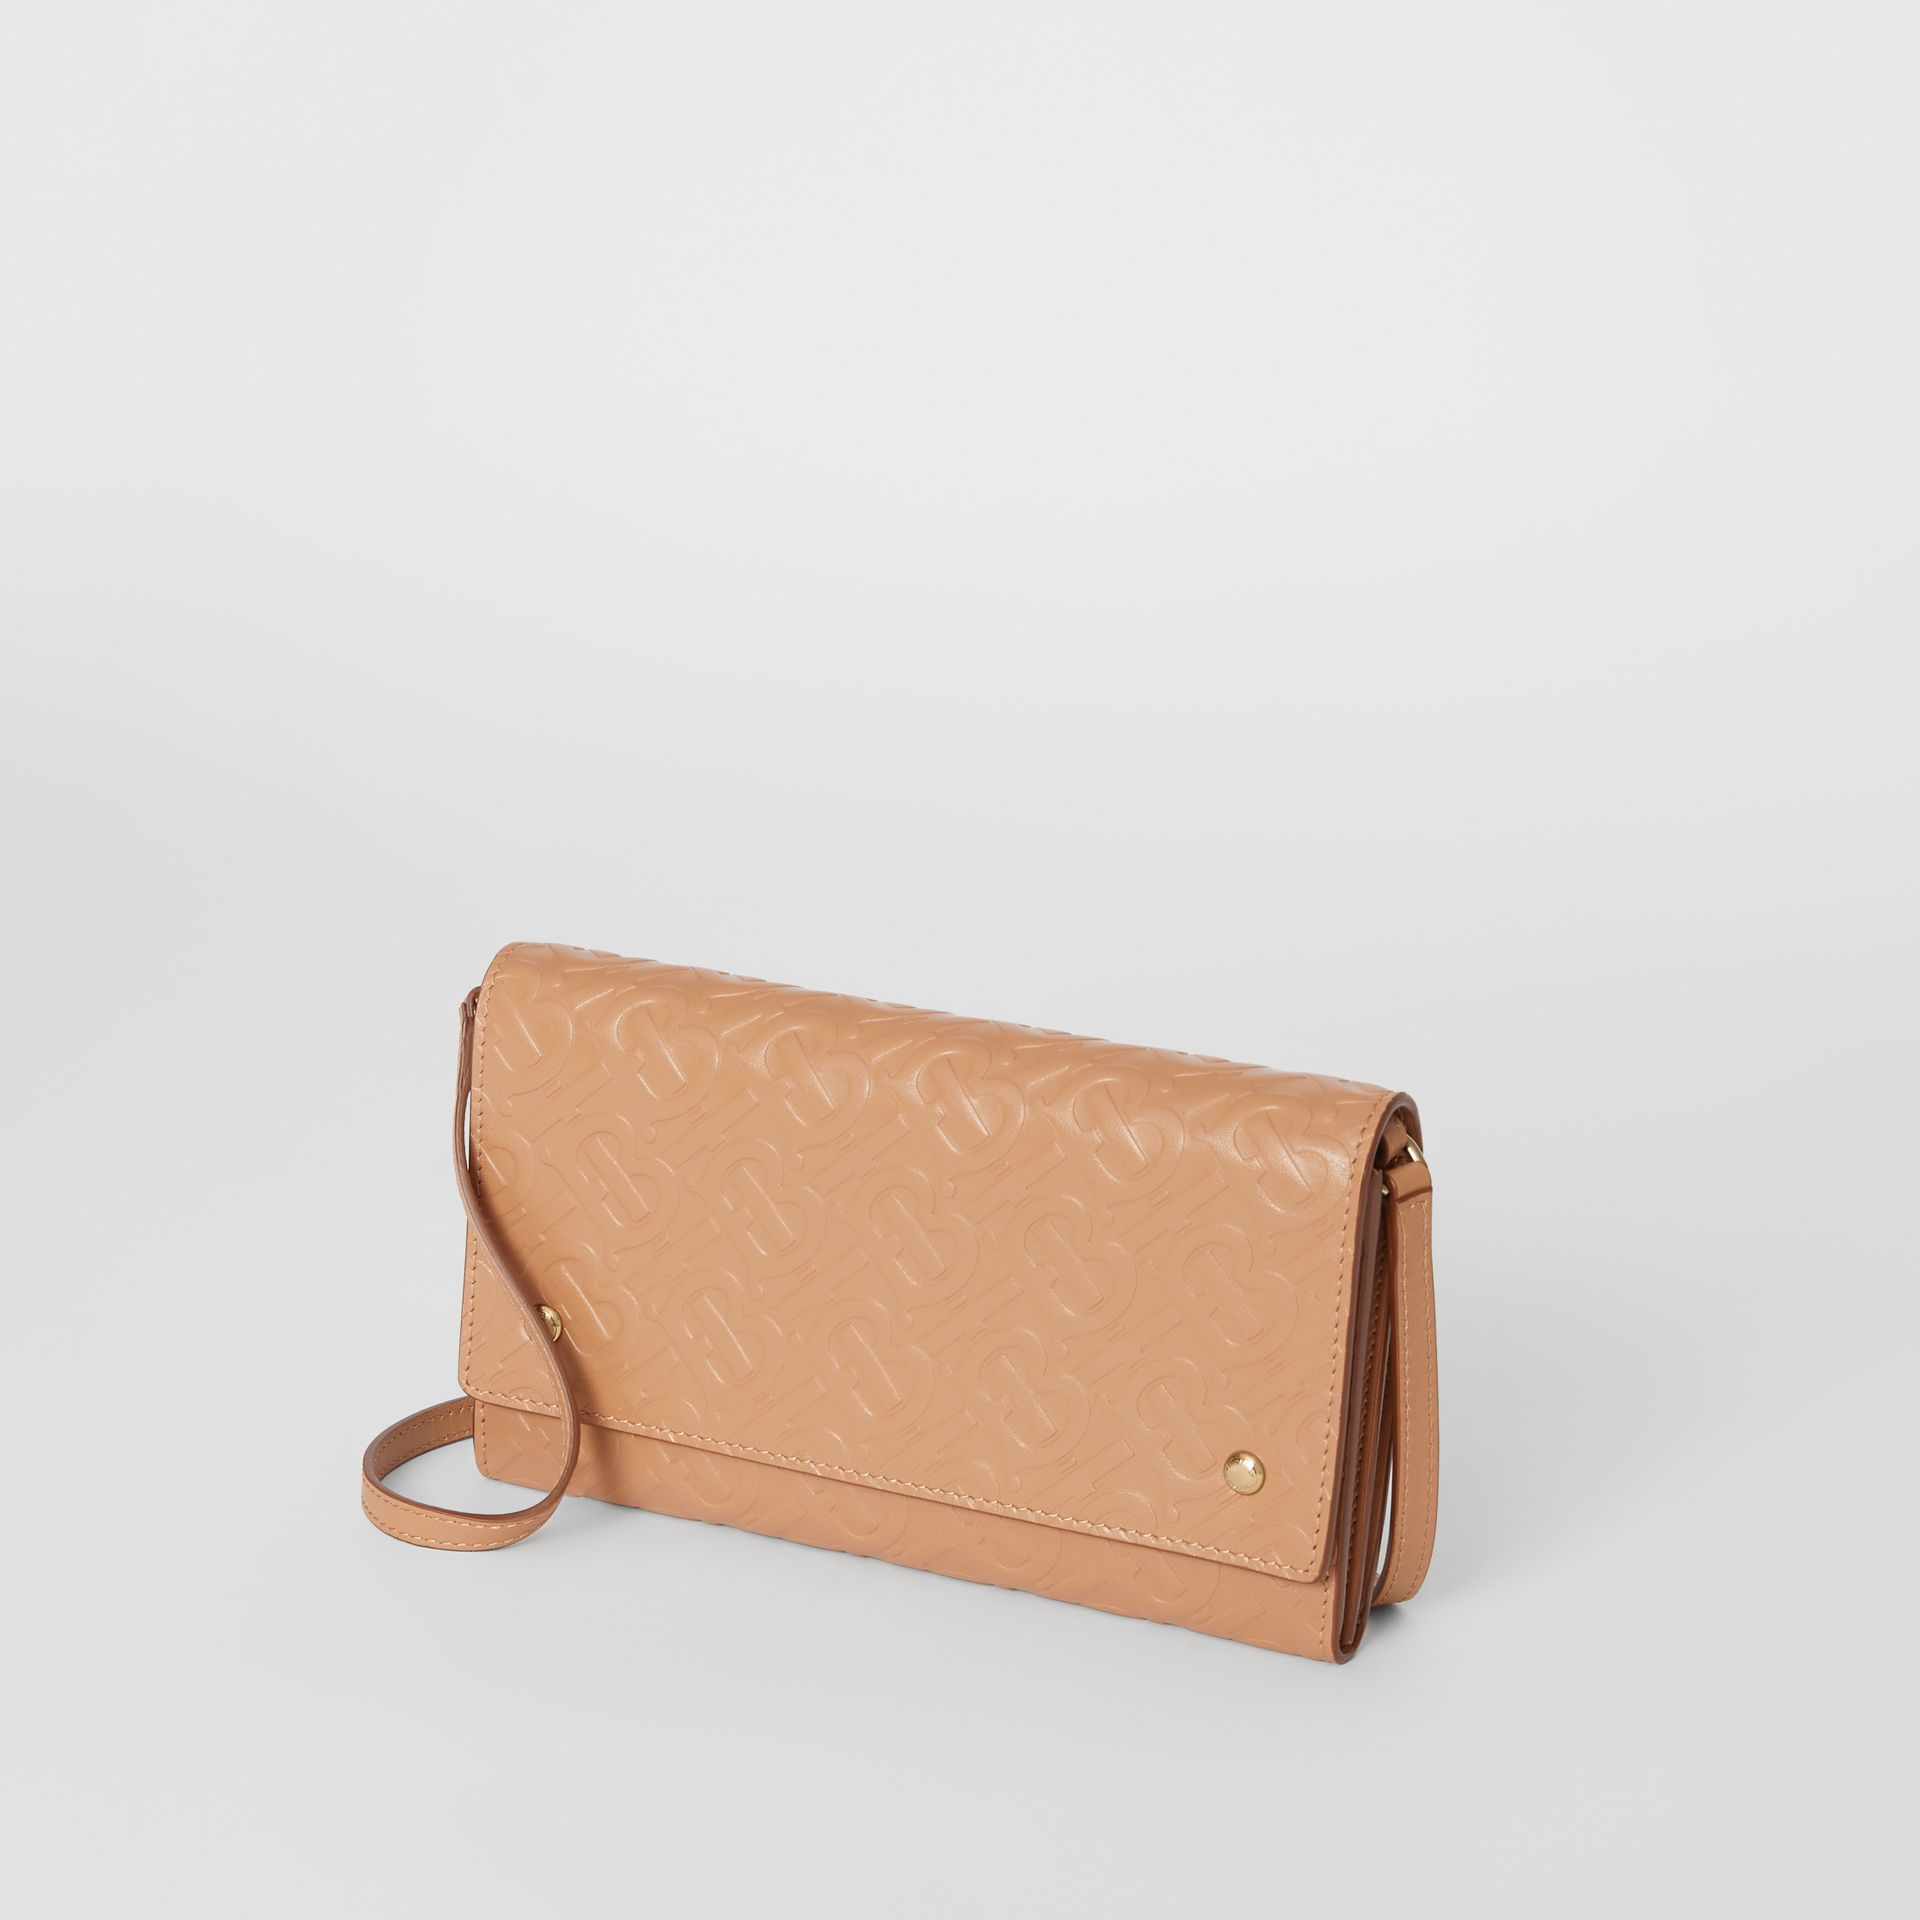 Monogram Leather Wallet with Detachable Strap in Light Camel - Women | Burberry United Kingdom - gallery image 4